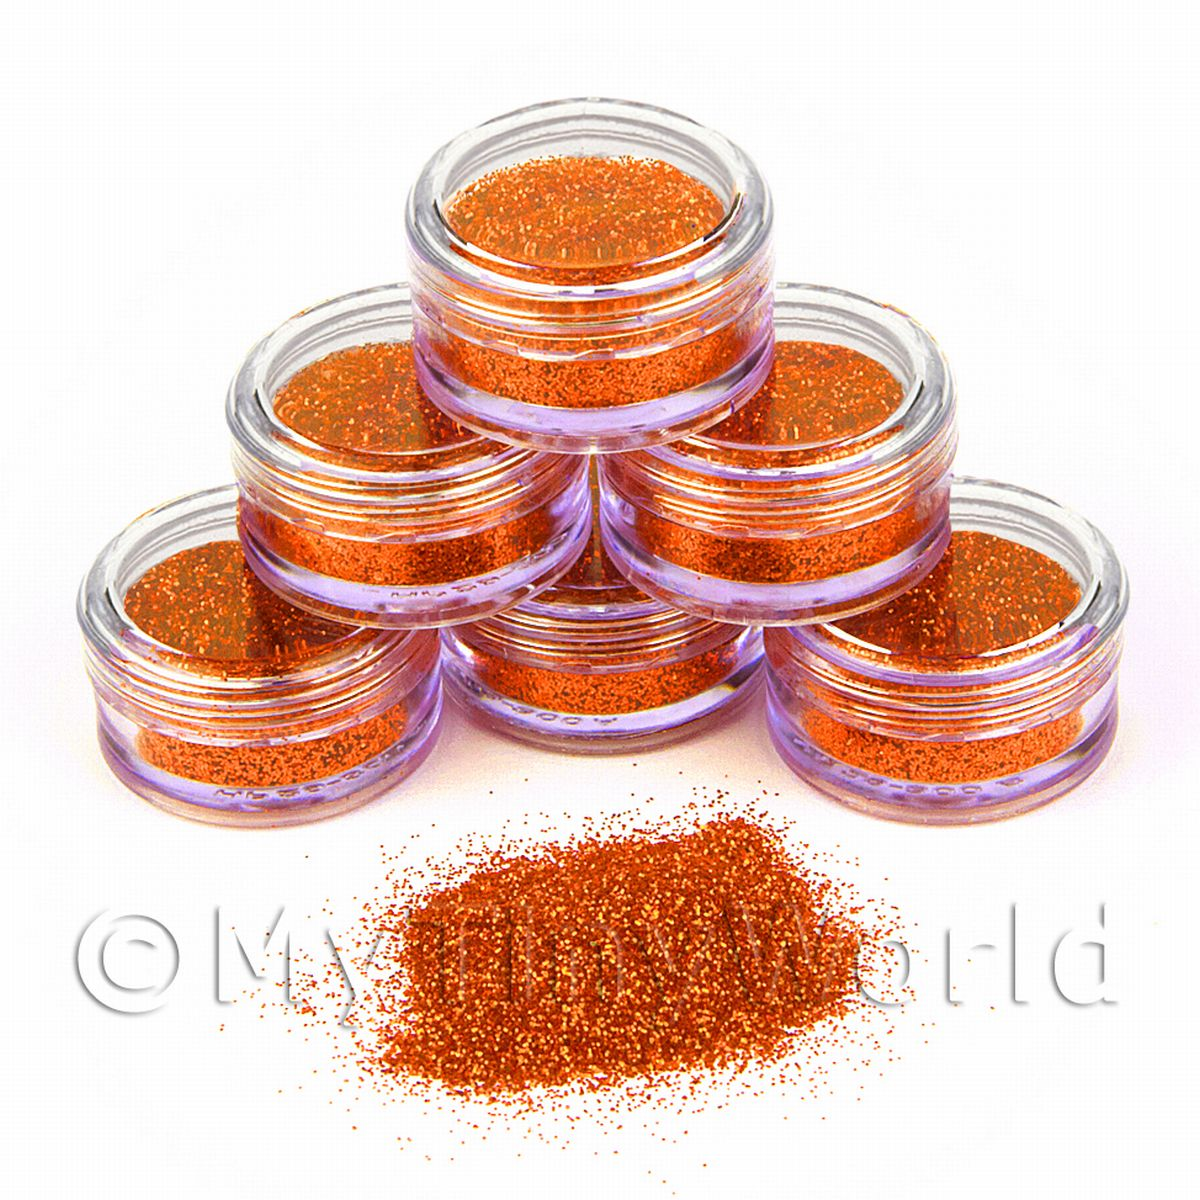 High Quality Nail Art Glitter - 2g Pot - Super Nova